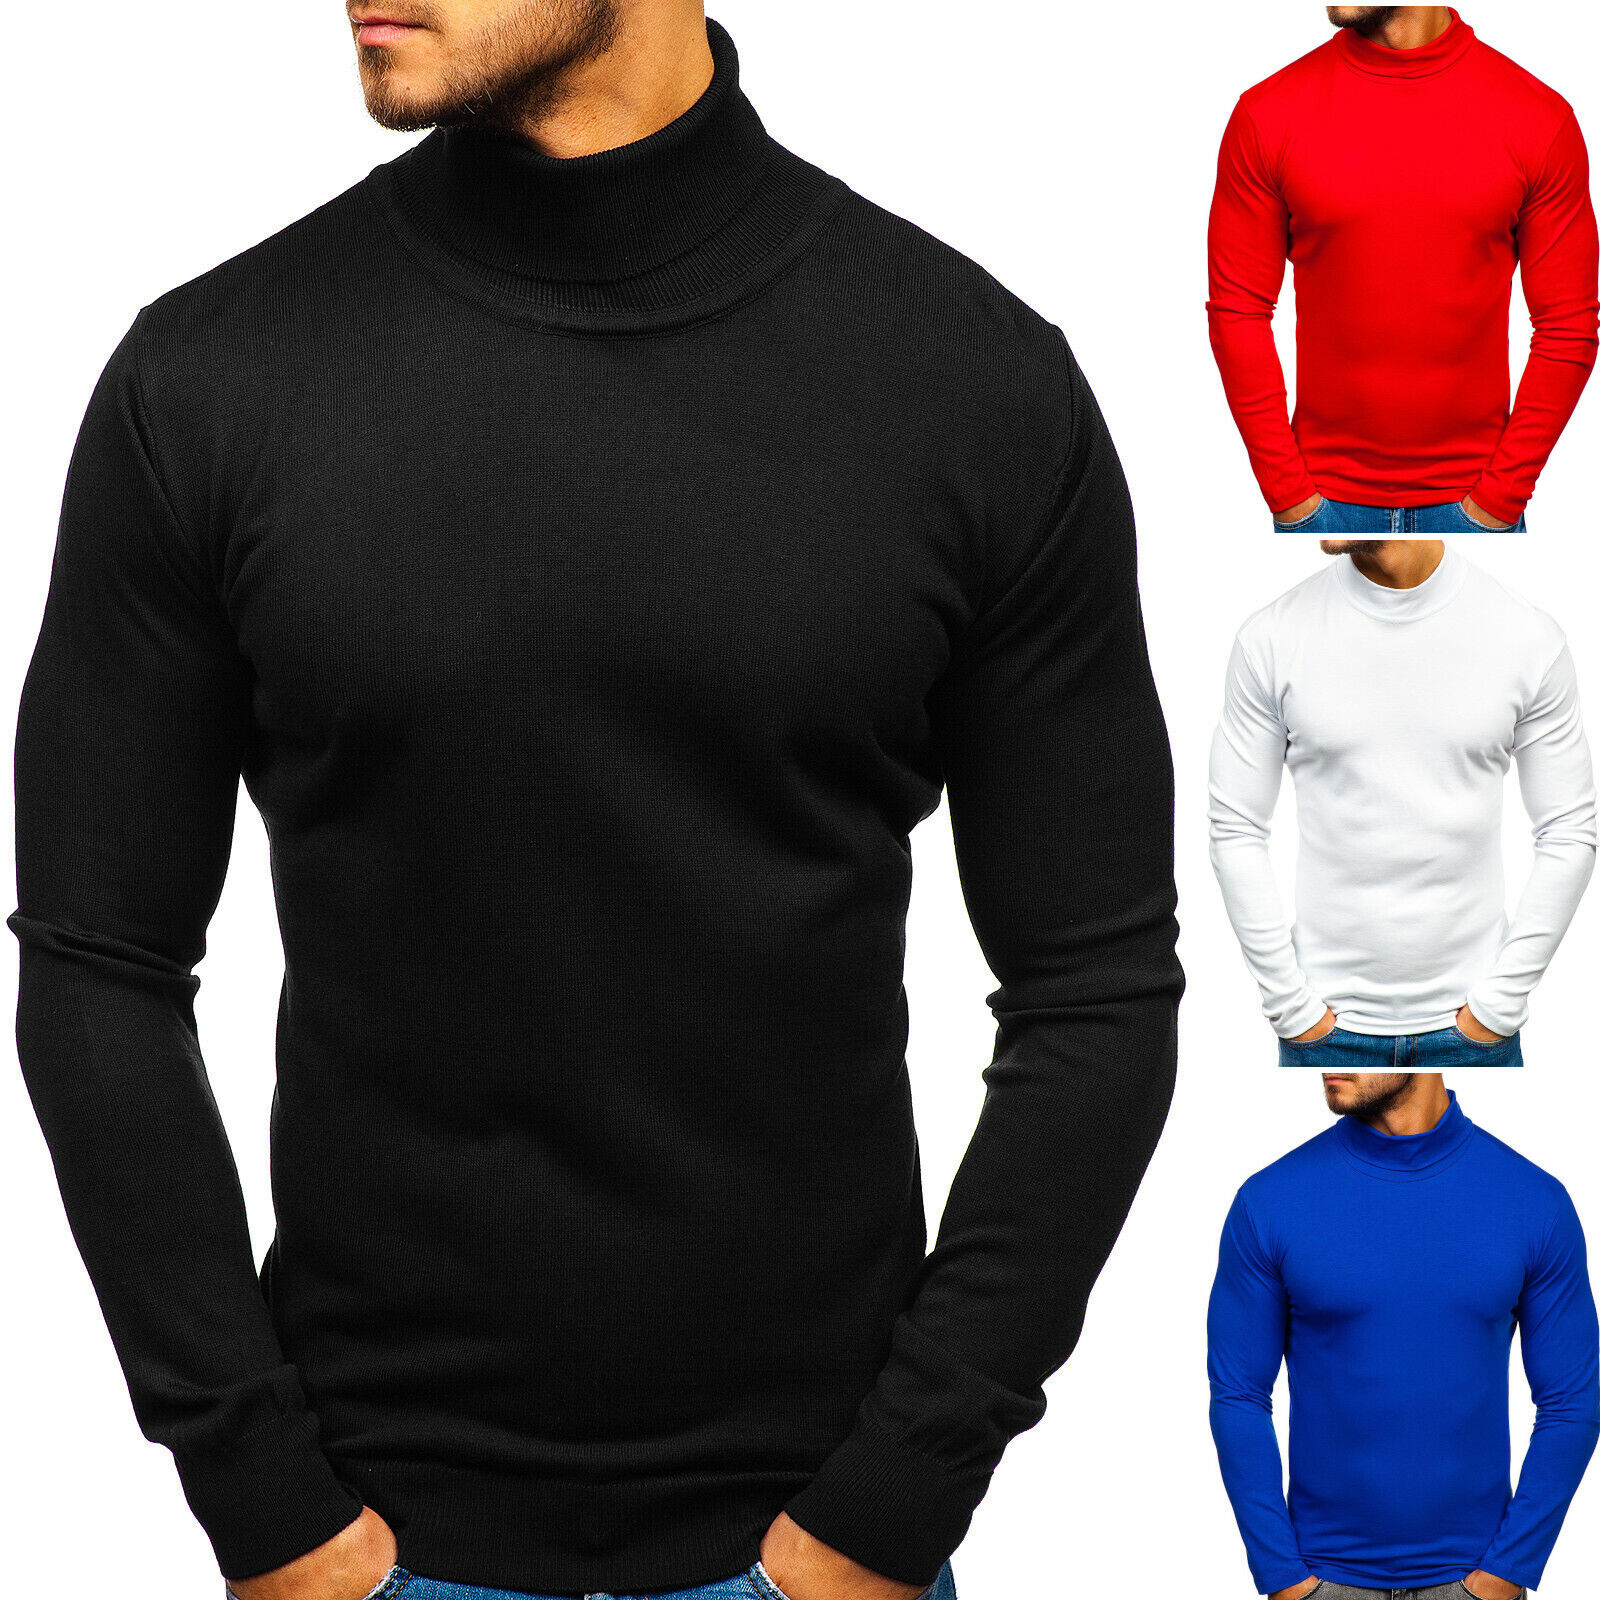 Pullover Sweater Strickjacke Strickpullover Men Herren Mix BOLF 5E5 Rollkragen